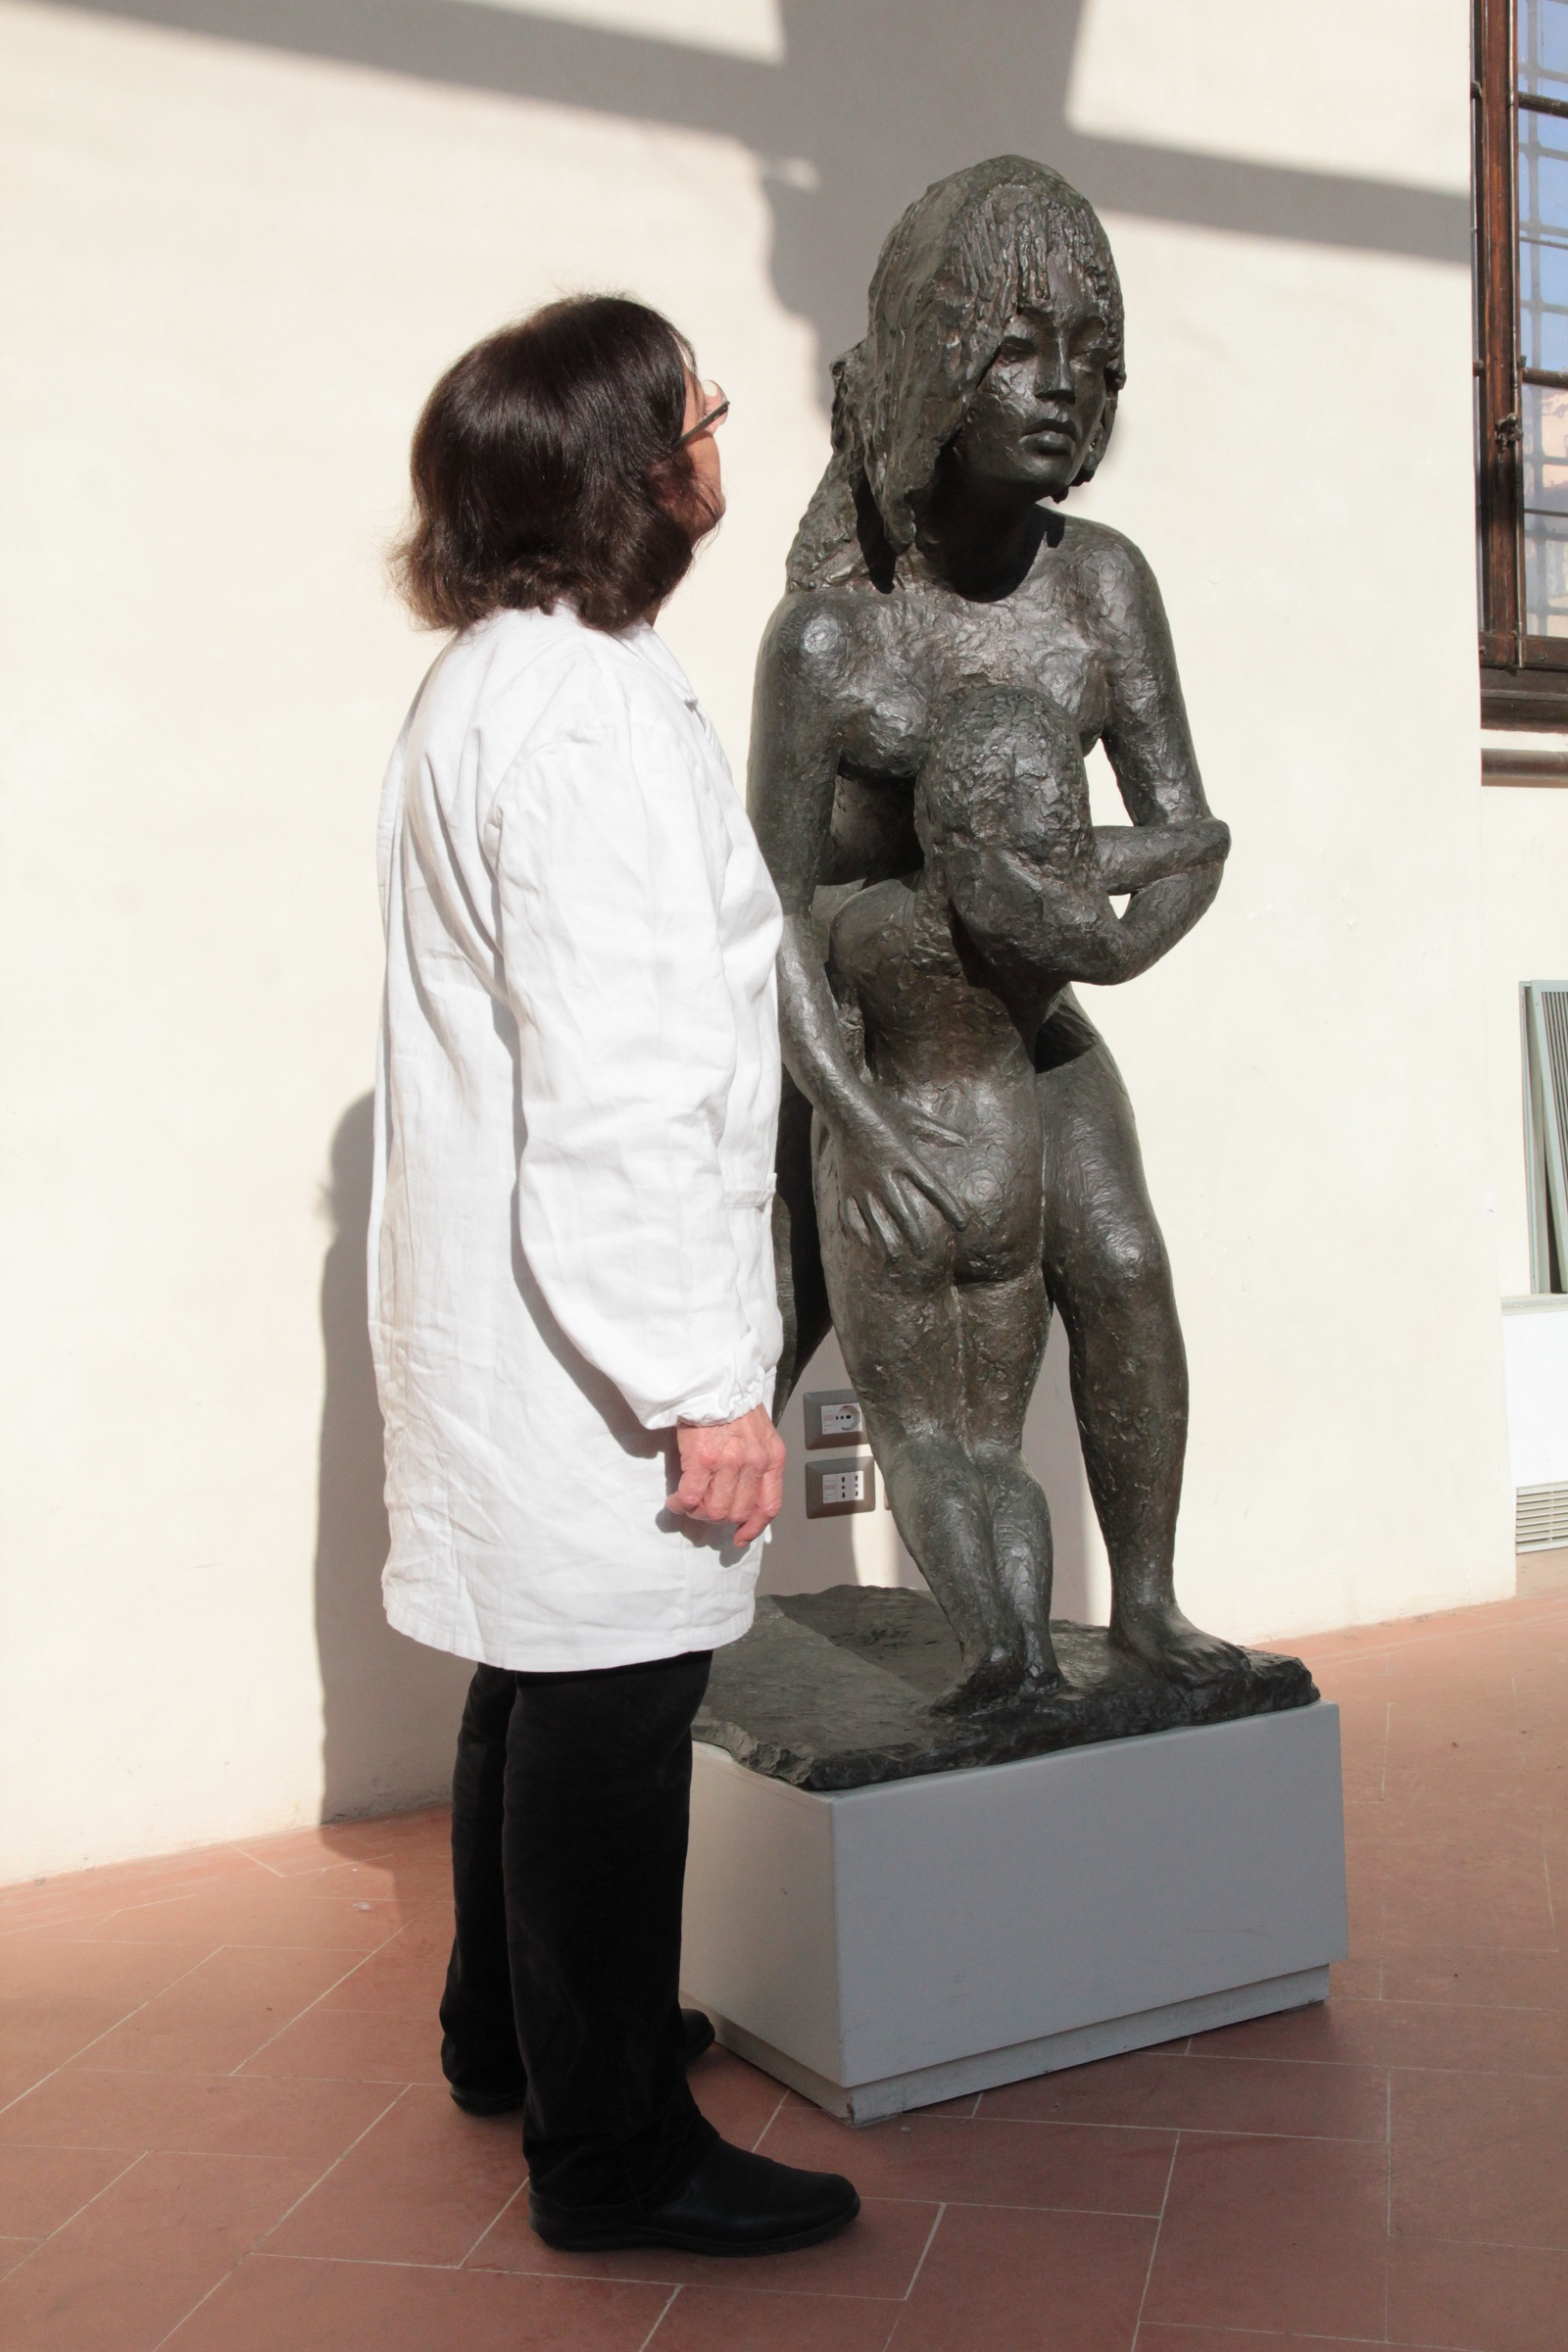 Examining an almost life-size sculpture pre-restoration